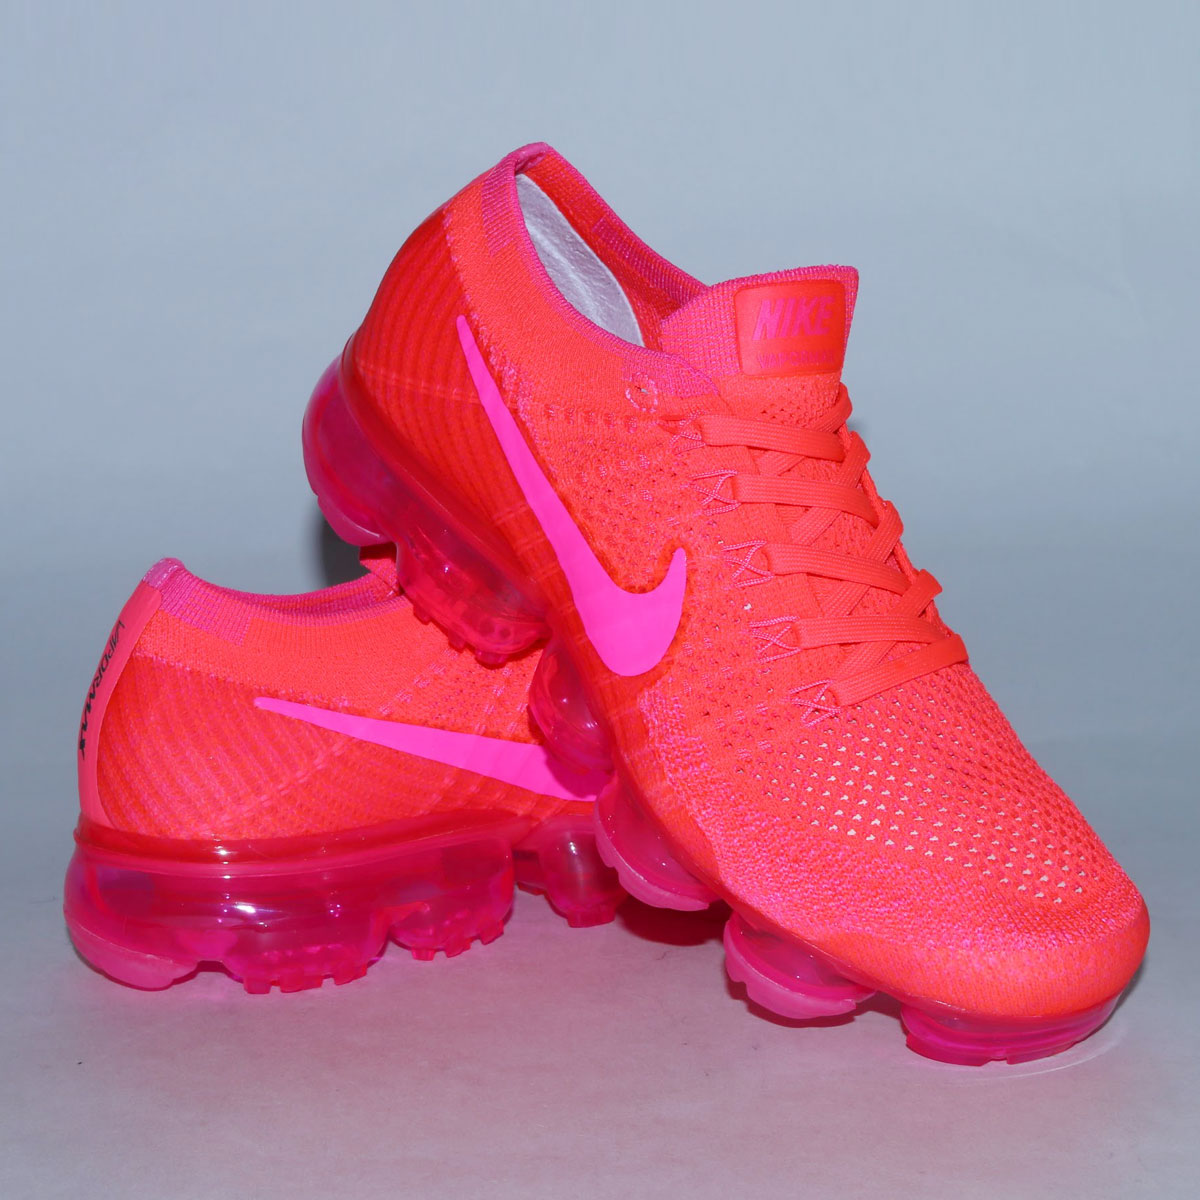 887c895bb71b5 NIKE WMNS AIR VAPORMAX FLYKNIT (Nike women air vapor max fried food knit) (HYPER  PUNCH PINK BLAST-HOT PUNCH-BLACK) 18SP-S